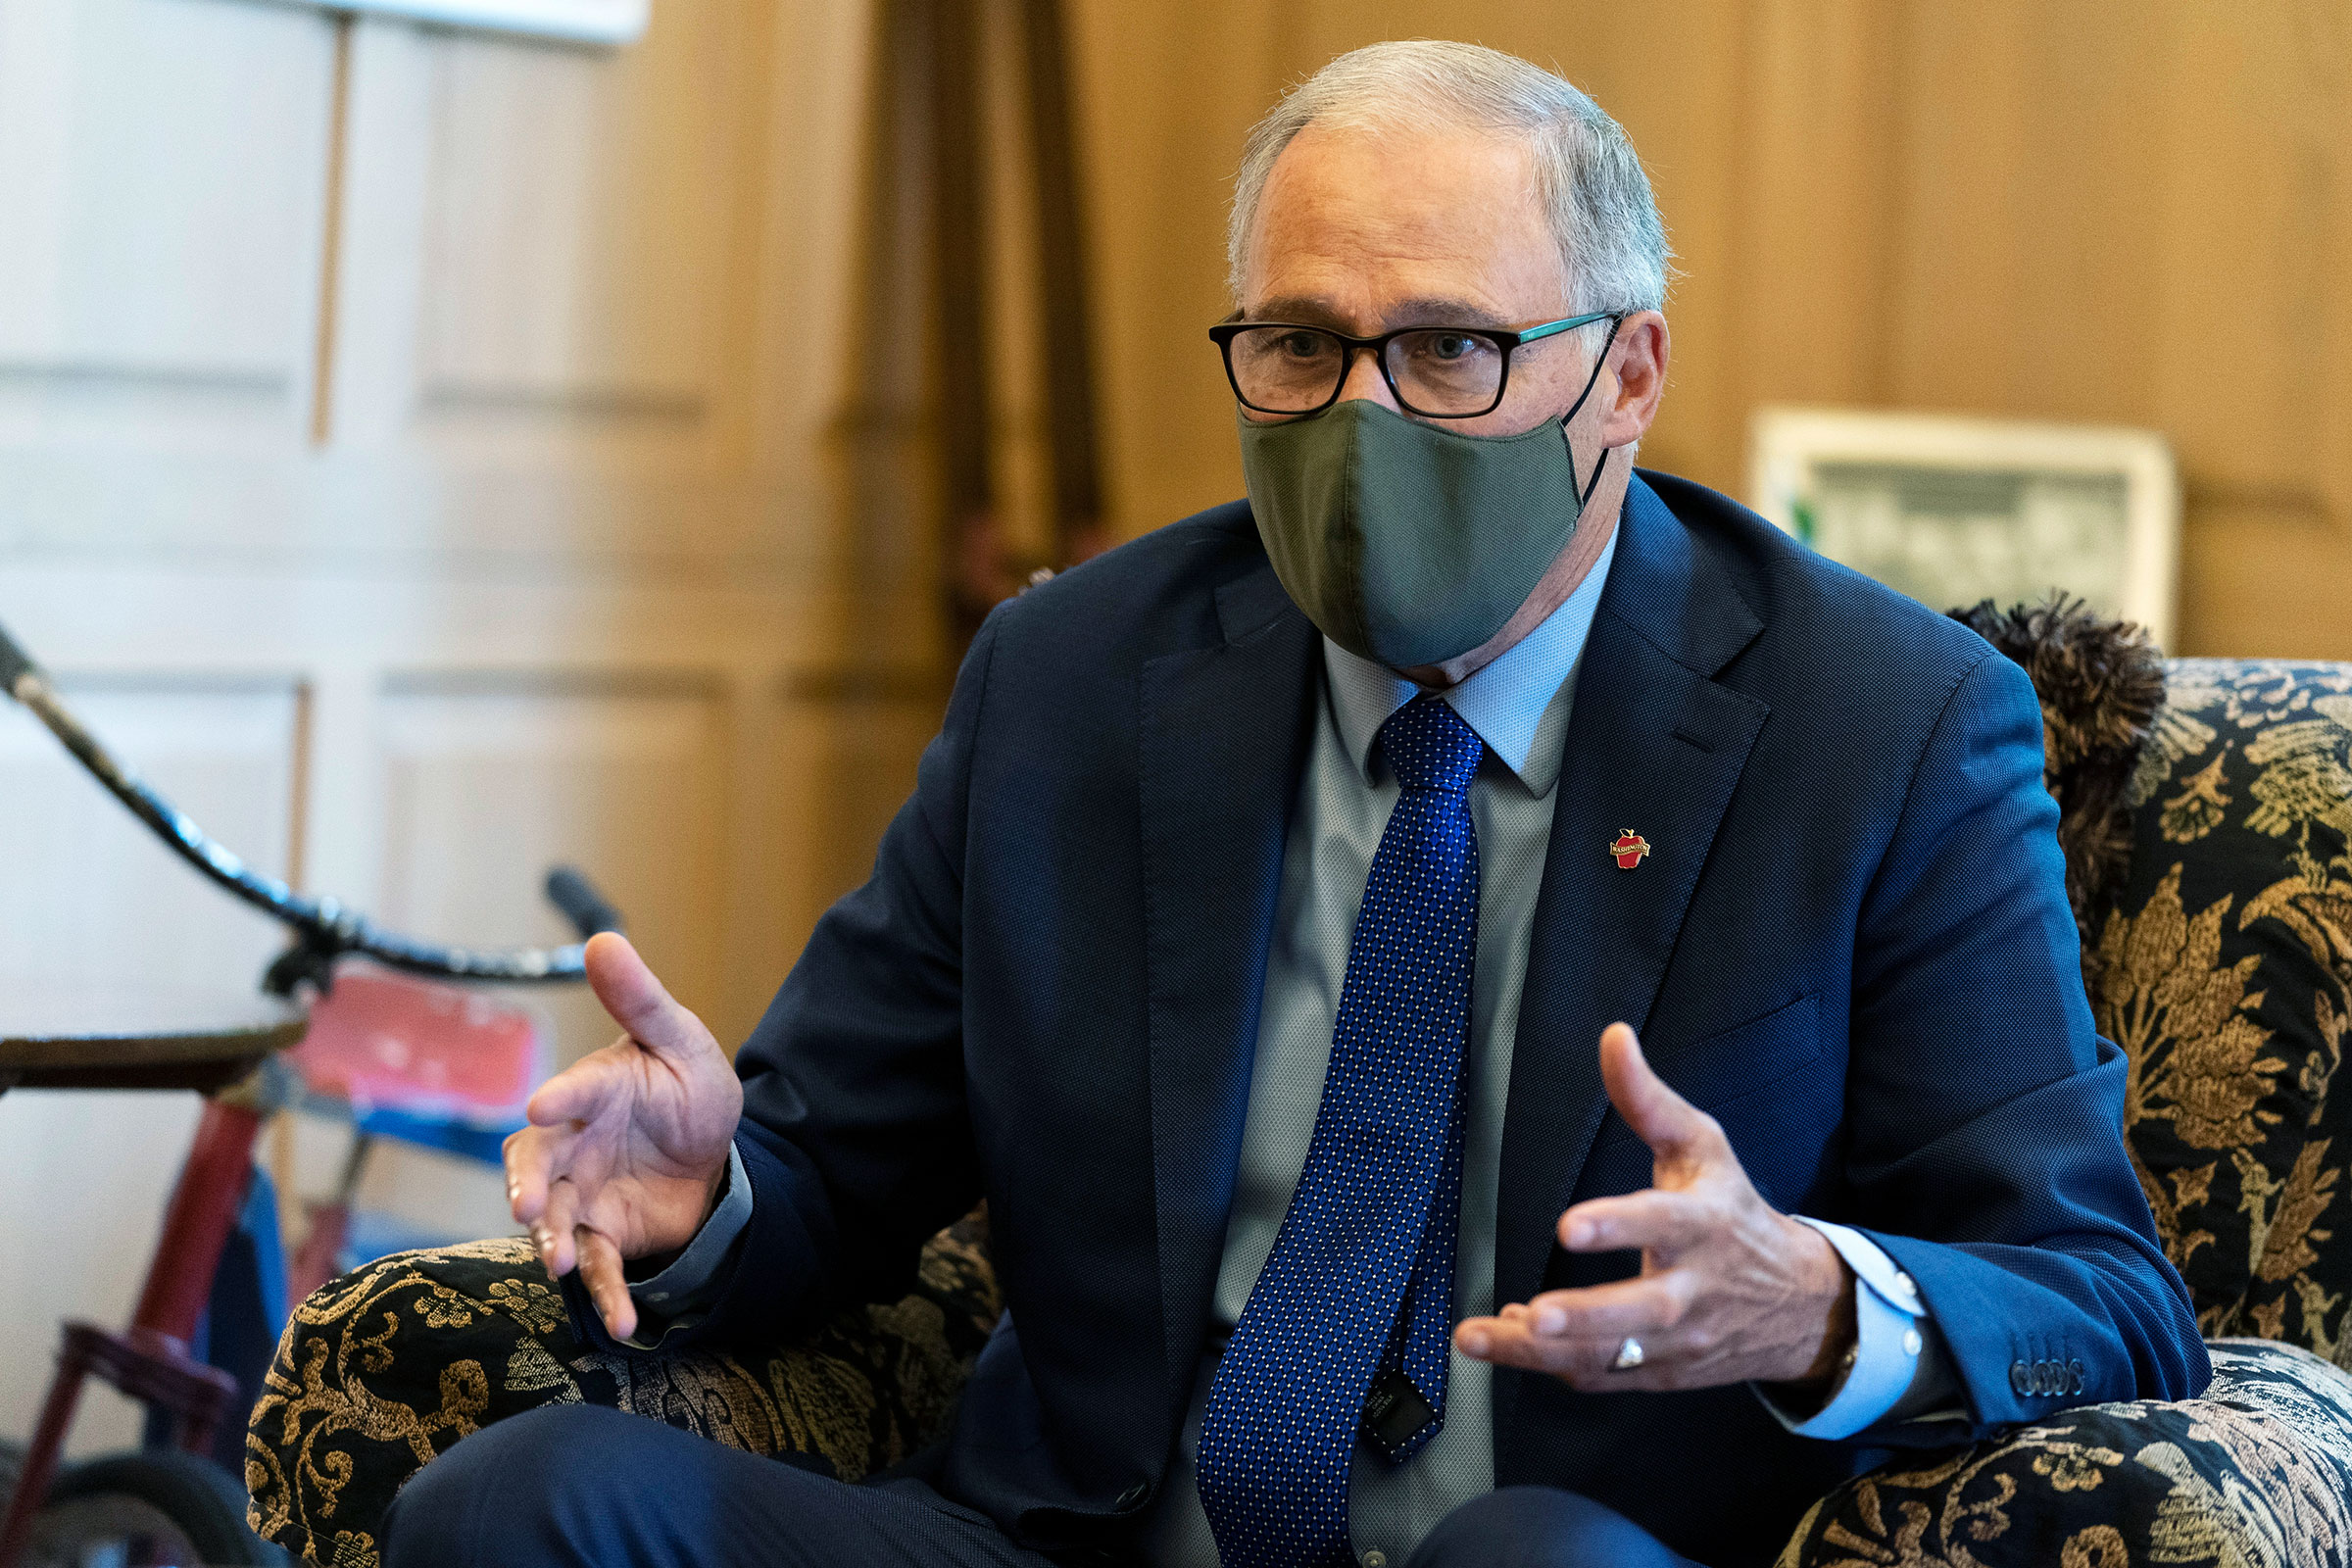 Gov. Jay Inslee takes part in an interview on September 25 at the Governor's Mansion in Olympia, Washington.